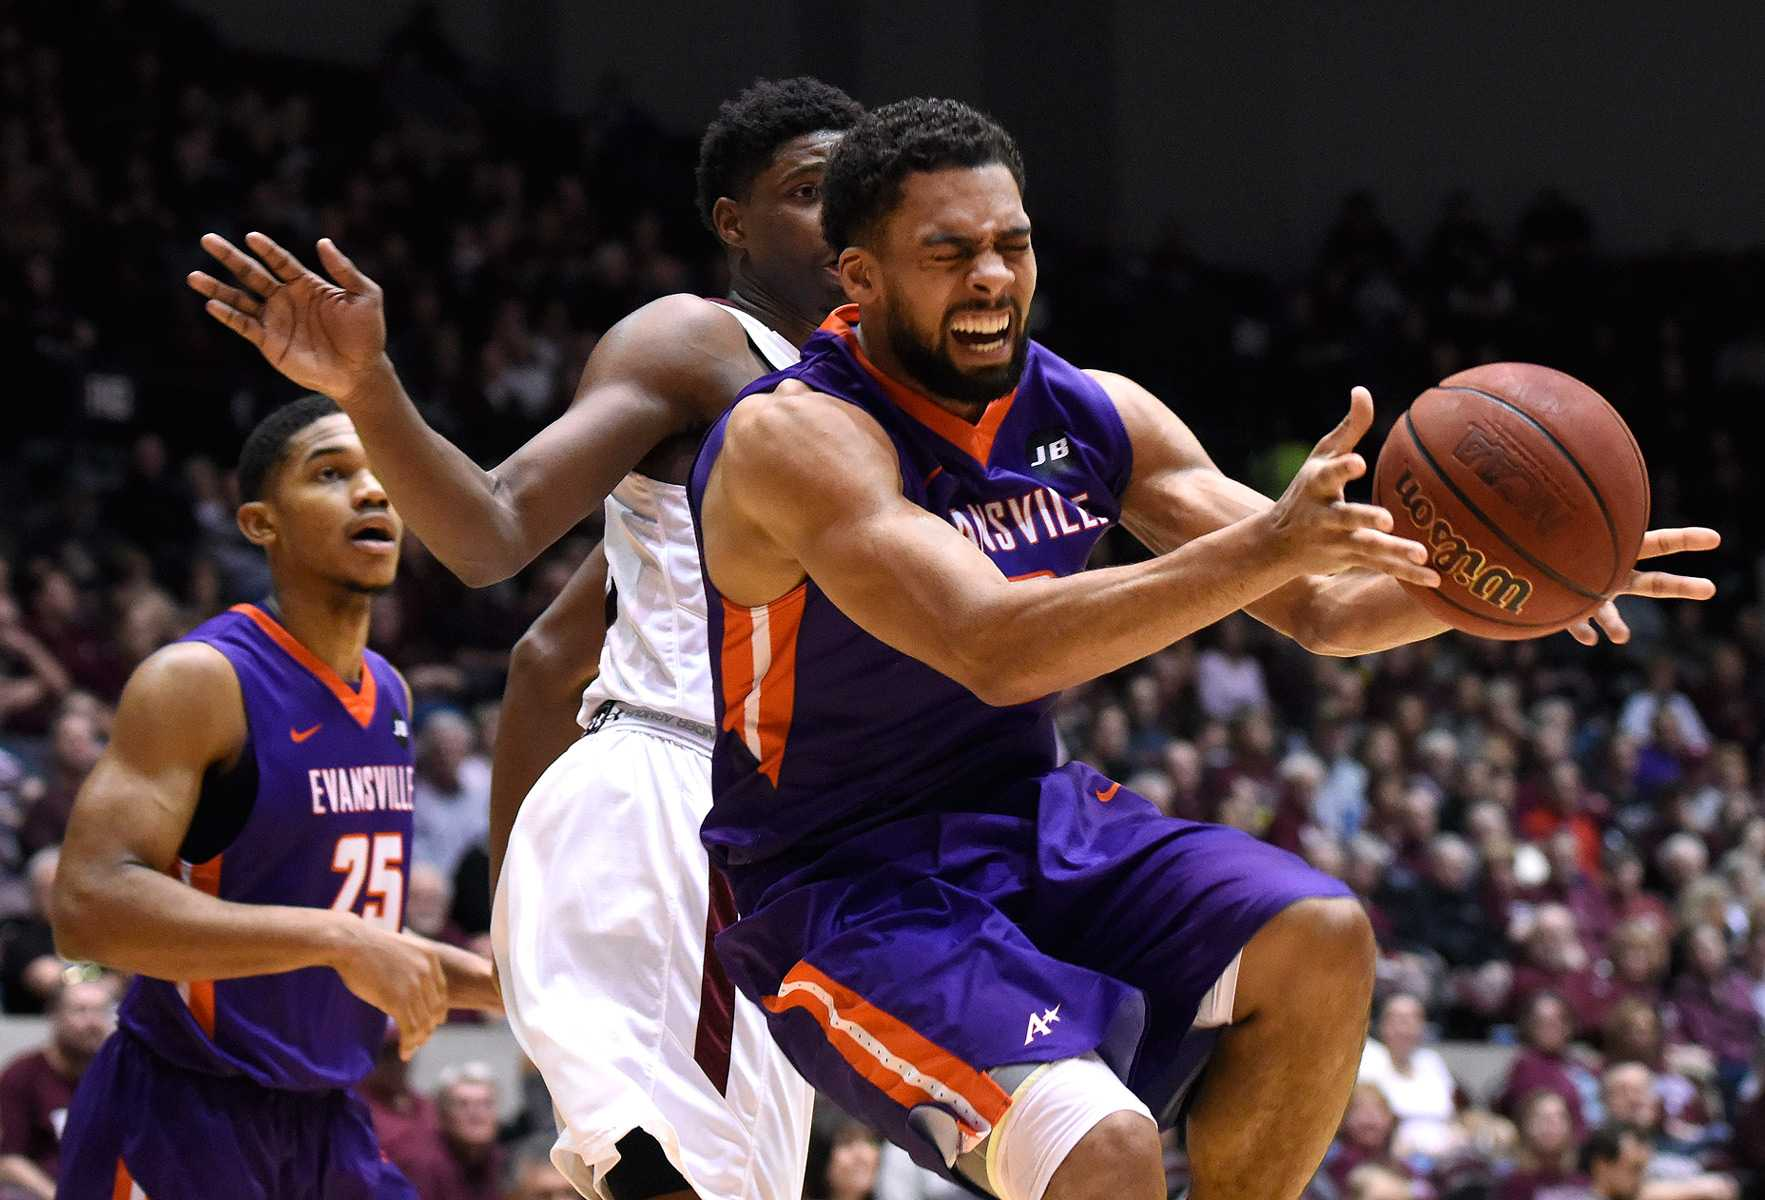 Evansville senior guard Christian Benzon reaches for the ball Saturday, Feb. 11, 2017, during the Purple Aces' 75-70 win over the Salukis at SIU Arena. (Luke Nozicka | @lukenozicka)